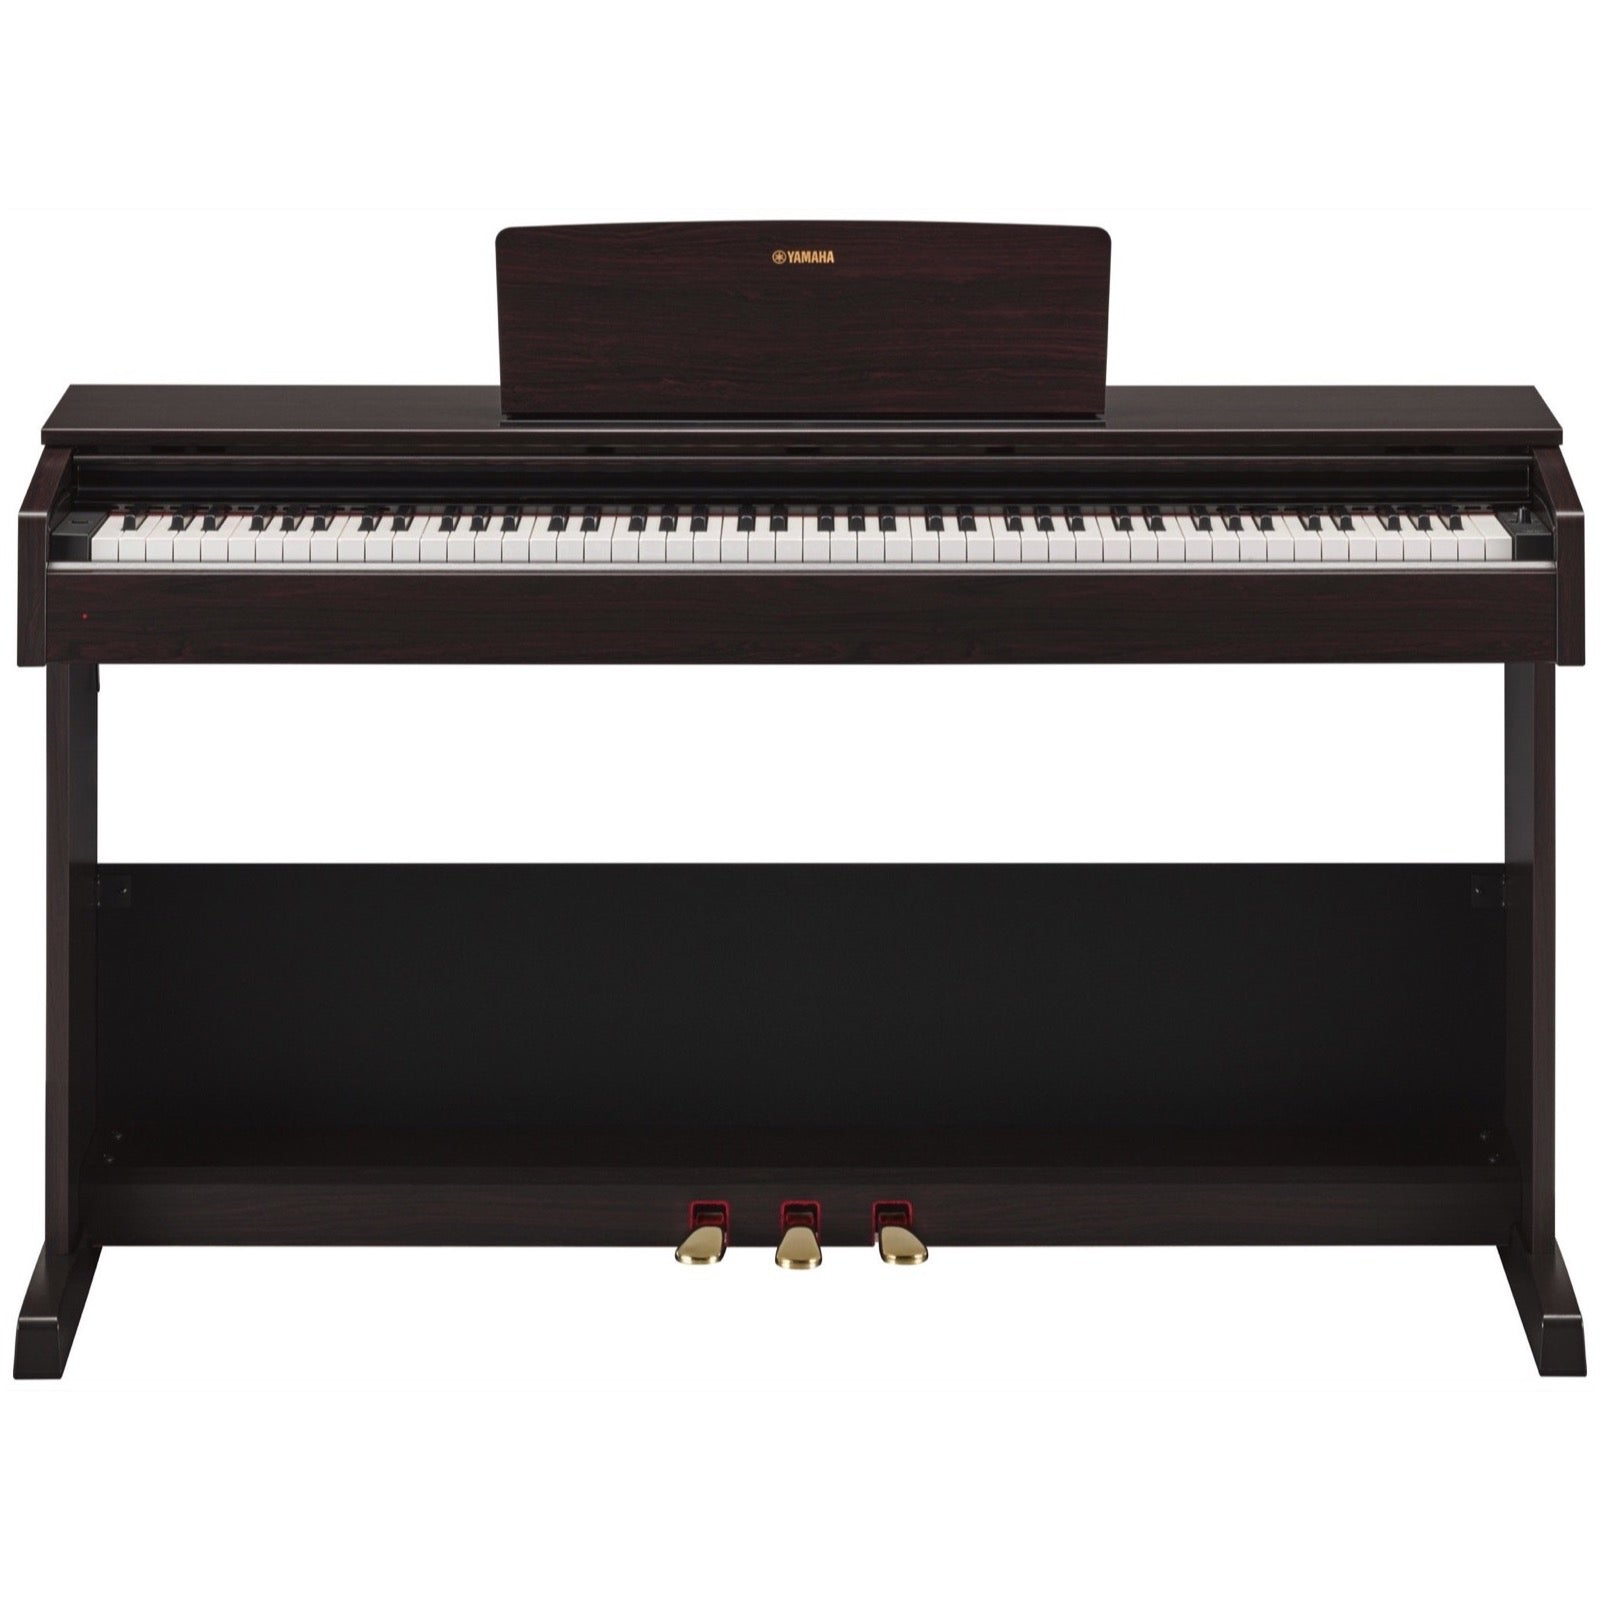 Yamaha YDP-103R Digital Piano (with Bench), Rosewood